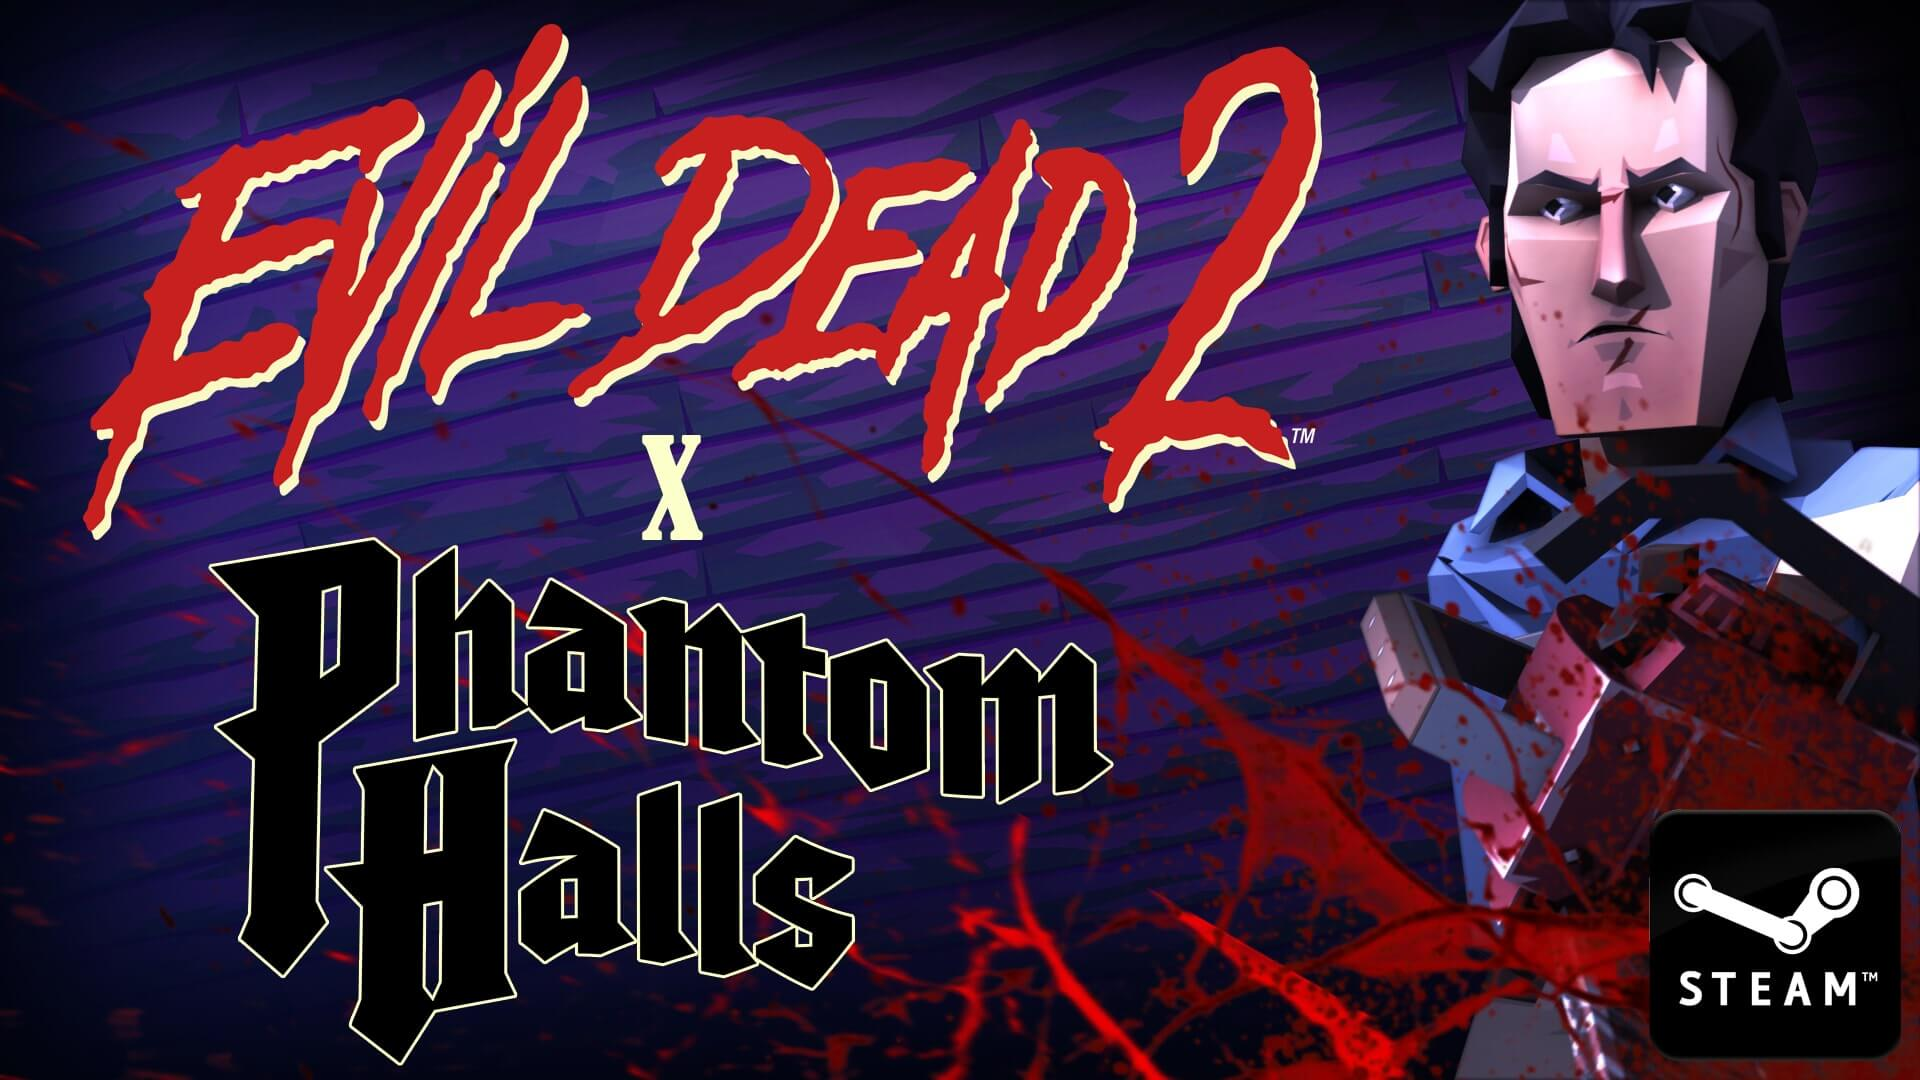 evil dead 2 phantom falls game 1 - Even More Evil Dead 2 Content Coming to Phantom Halls